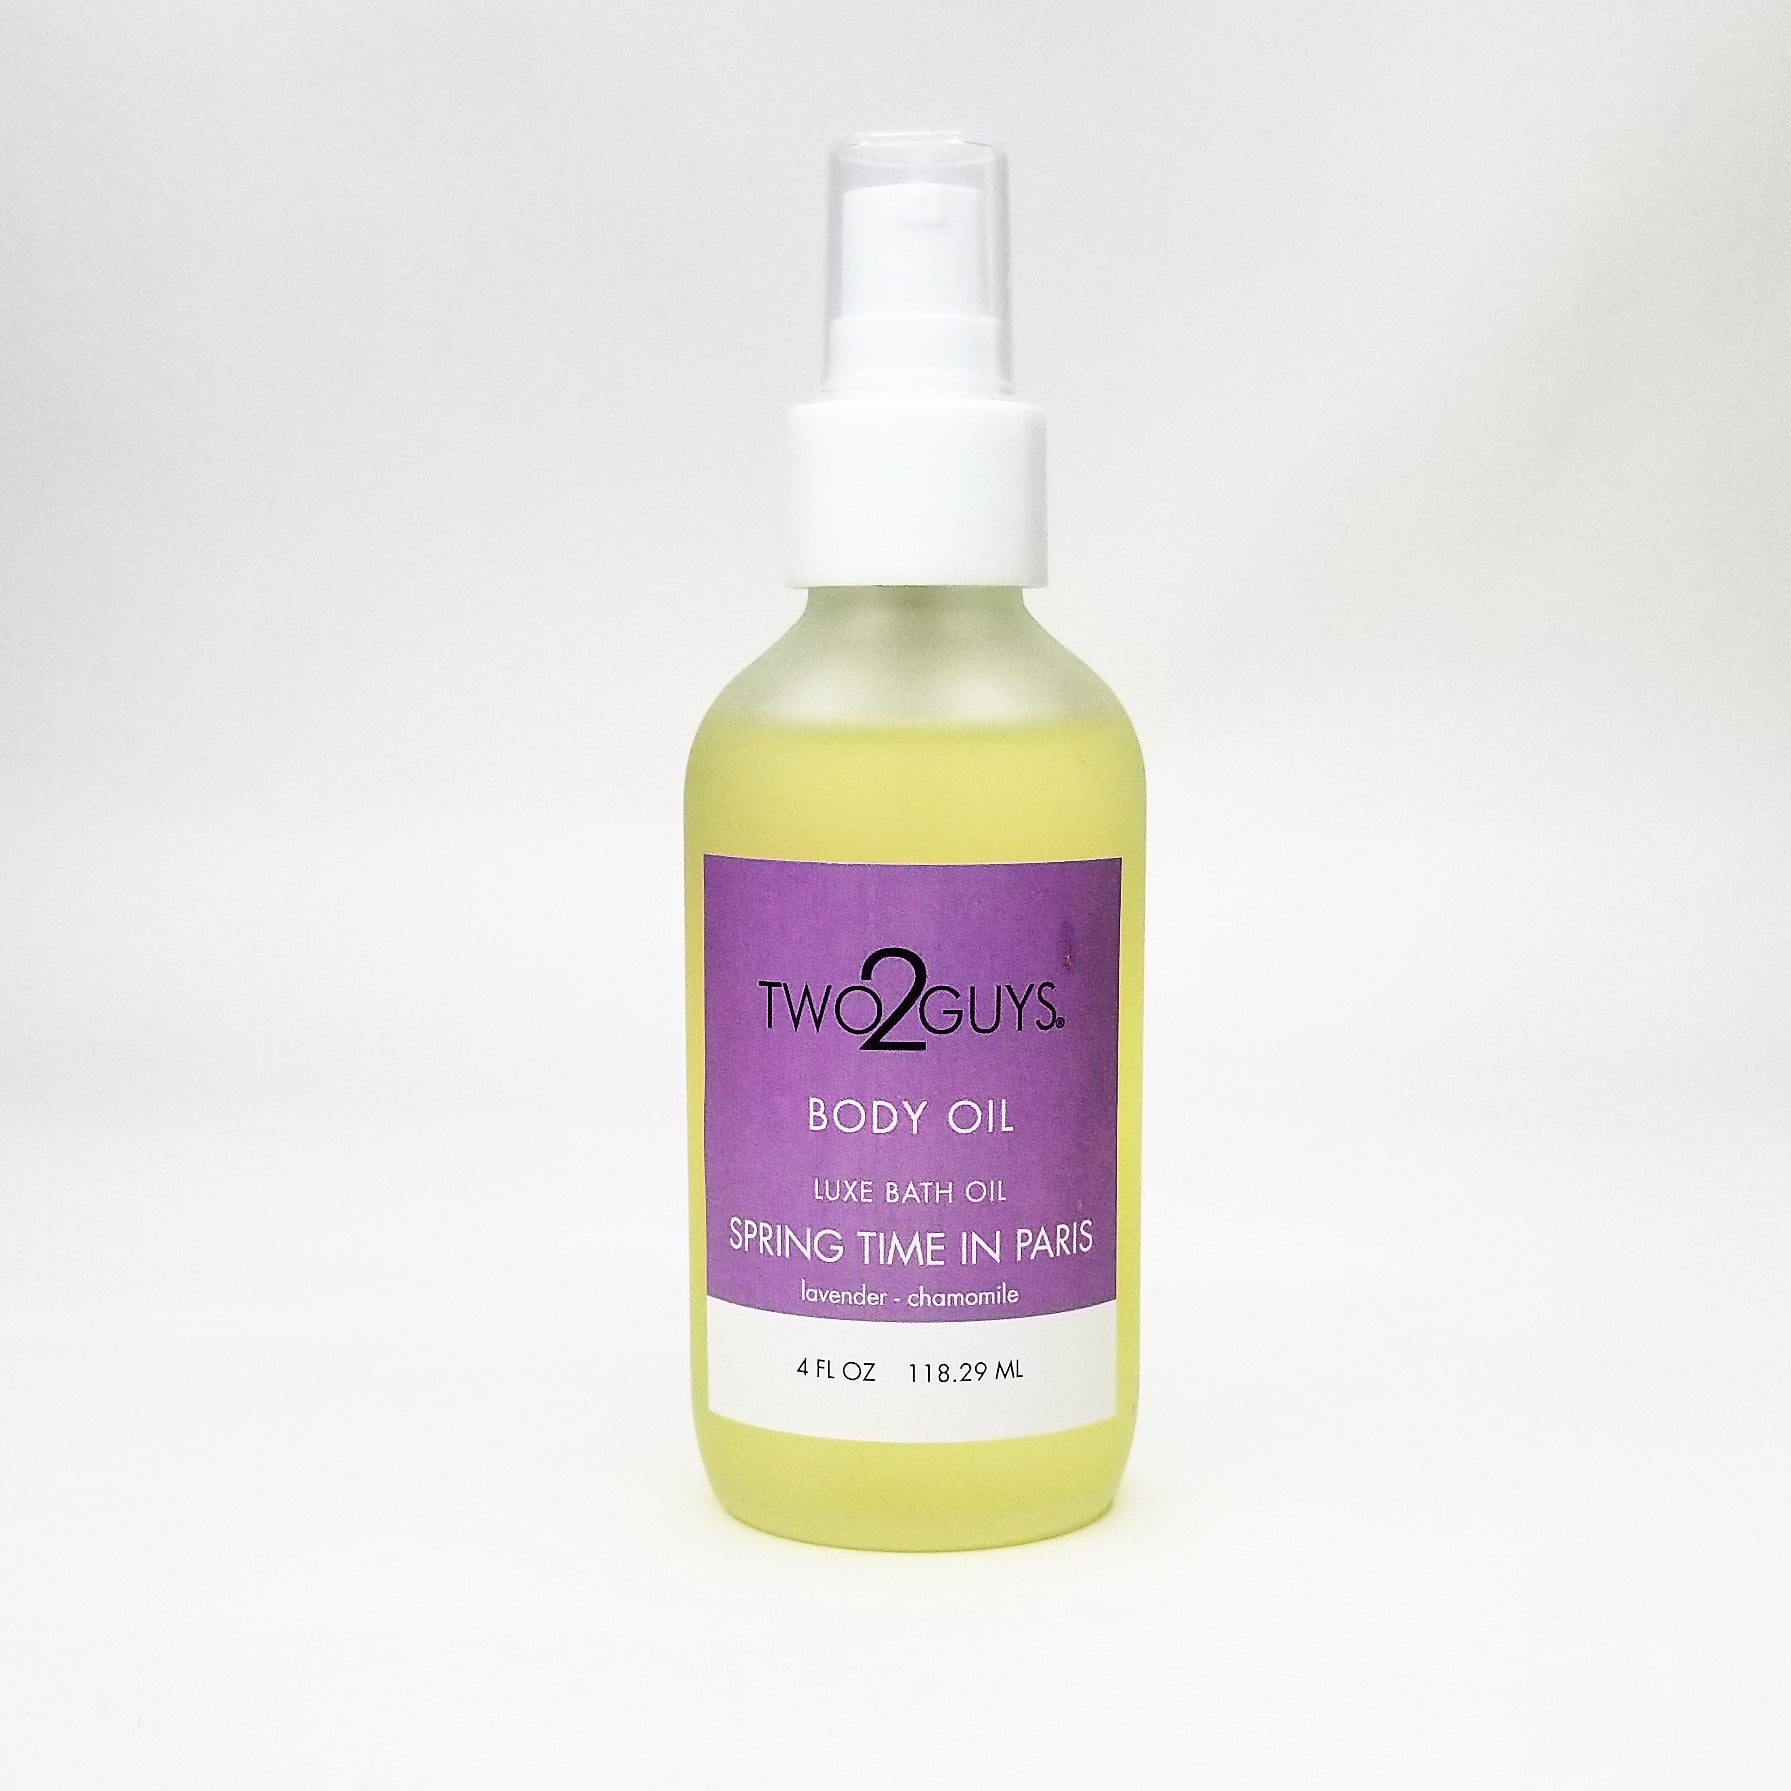 SPRINGTIME IN PARIS Body Oil